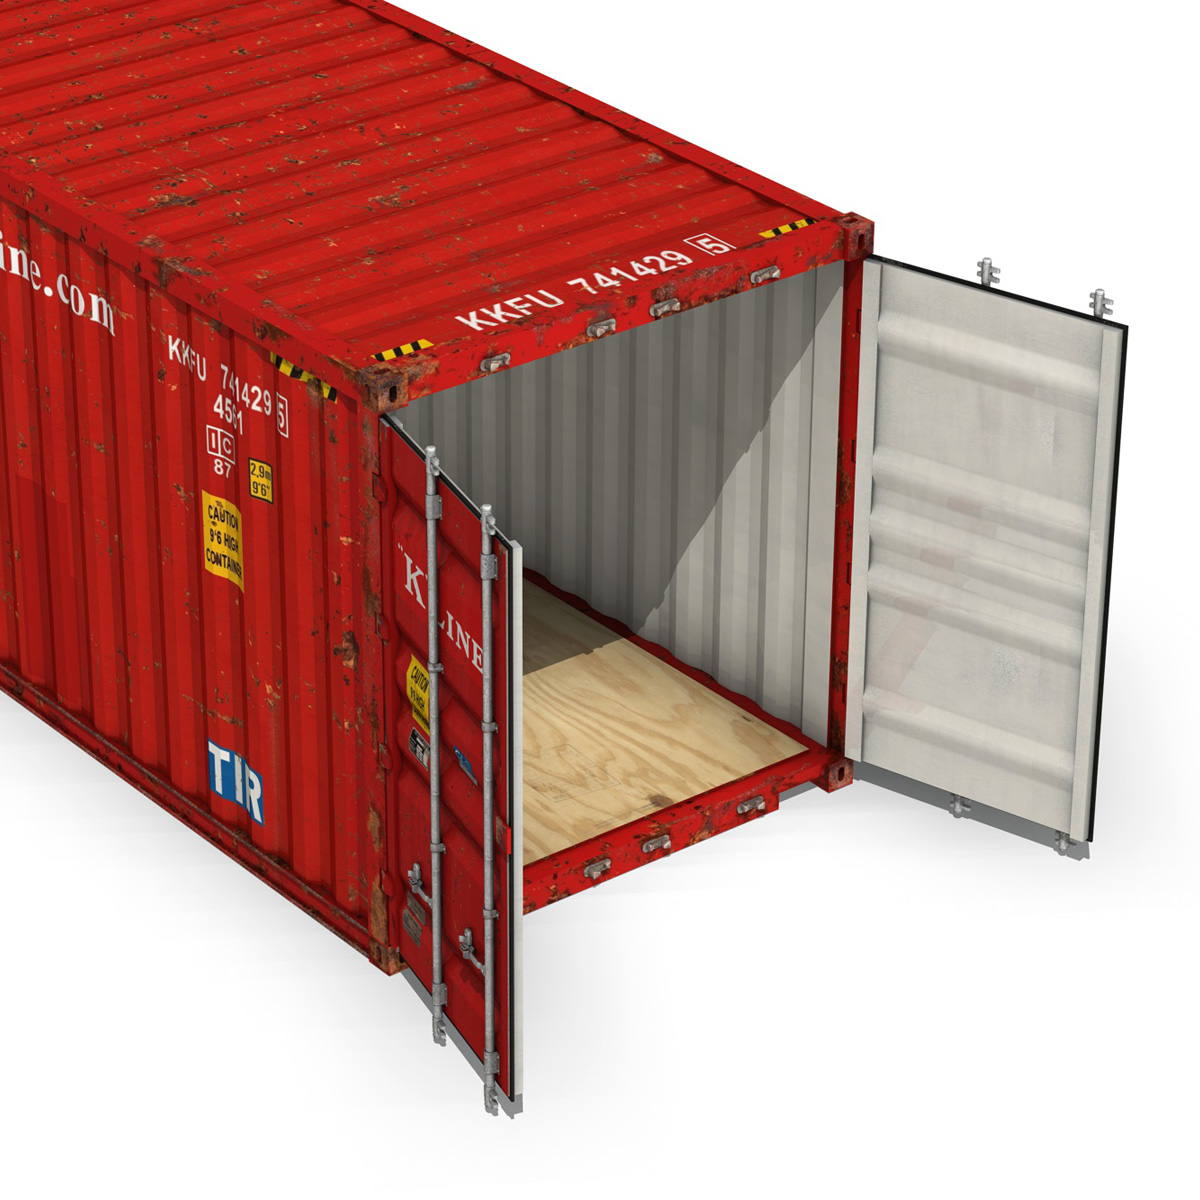 40ft shipping container – k line 3d model 3ds fbx lwo lw lws obj c4d 265122